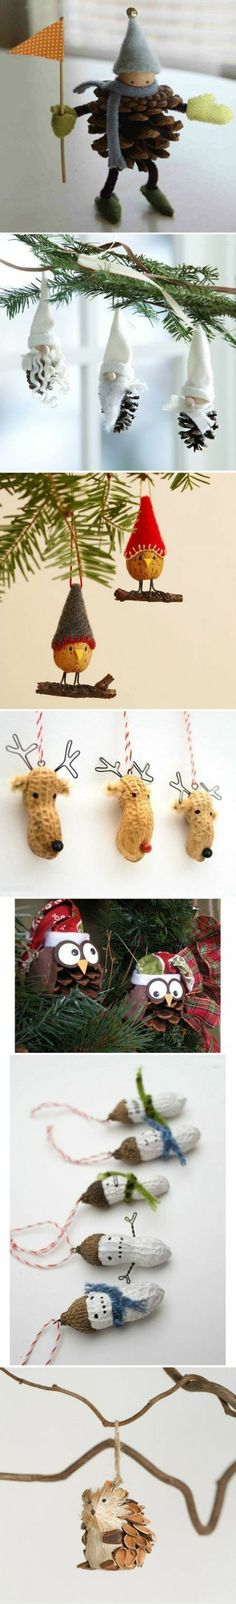 Make 1000 ideas for Christmas decorations – Christmas crafts – Alleideen 1 – Christmas Ideas Noel Christmas, Homemade Christmas, All Things Christmas, Winter Christmas, Christmas Ornaments, Diy Ornaments, Funny Christmas, Pinecone Ornaments, Miniature Christmas